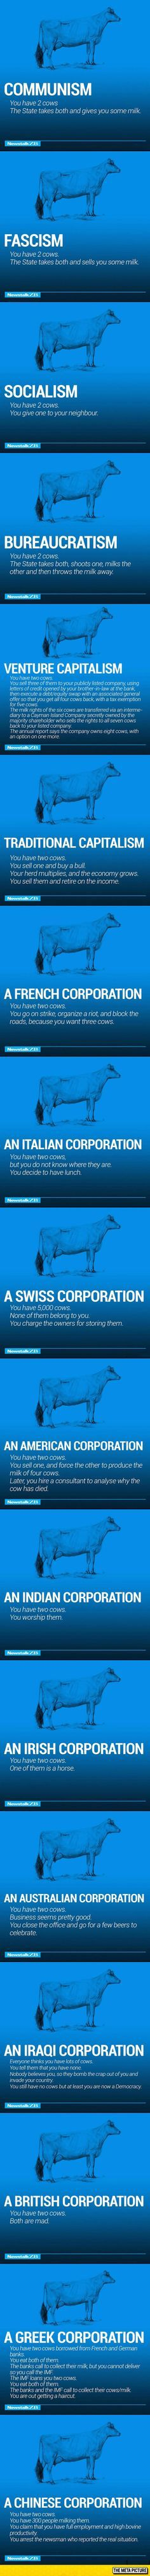 The World's Economy Explained With Just Two Cows... twisted world we live in...